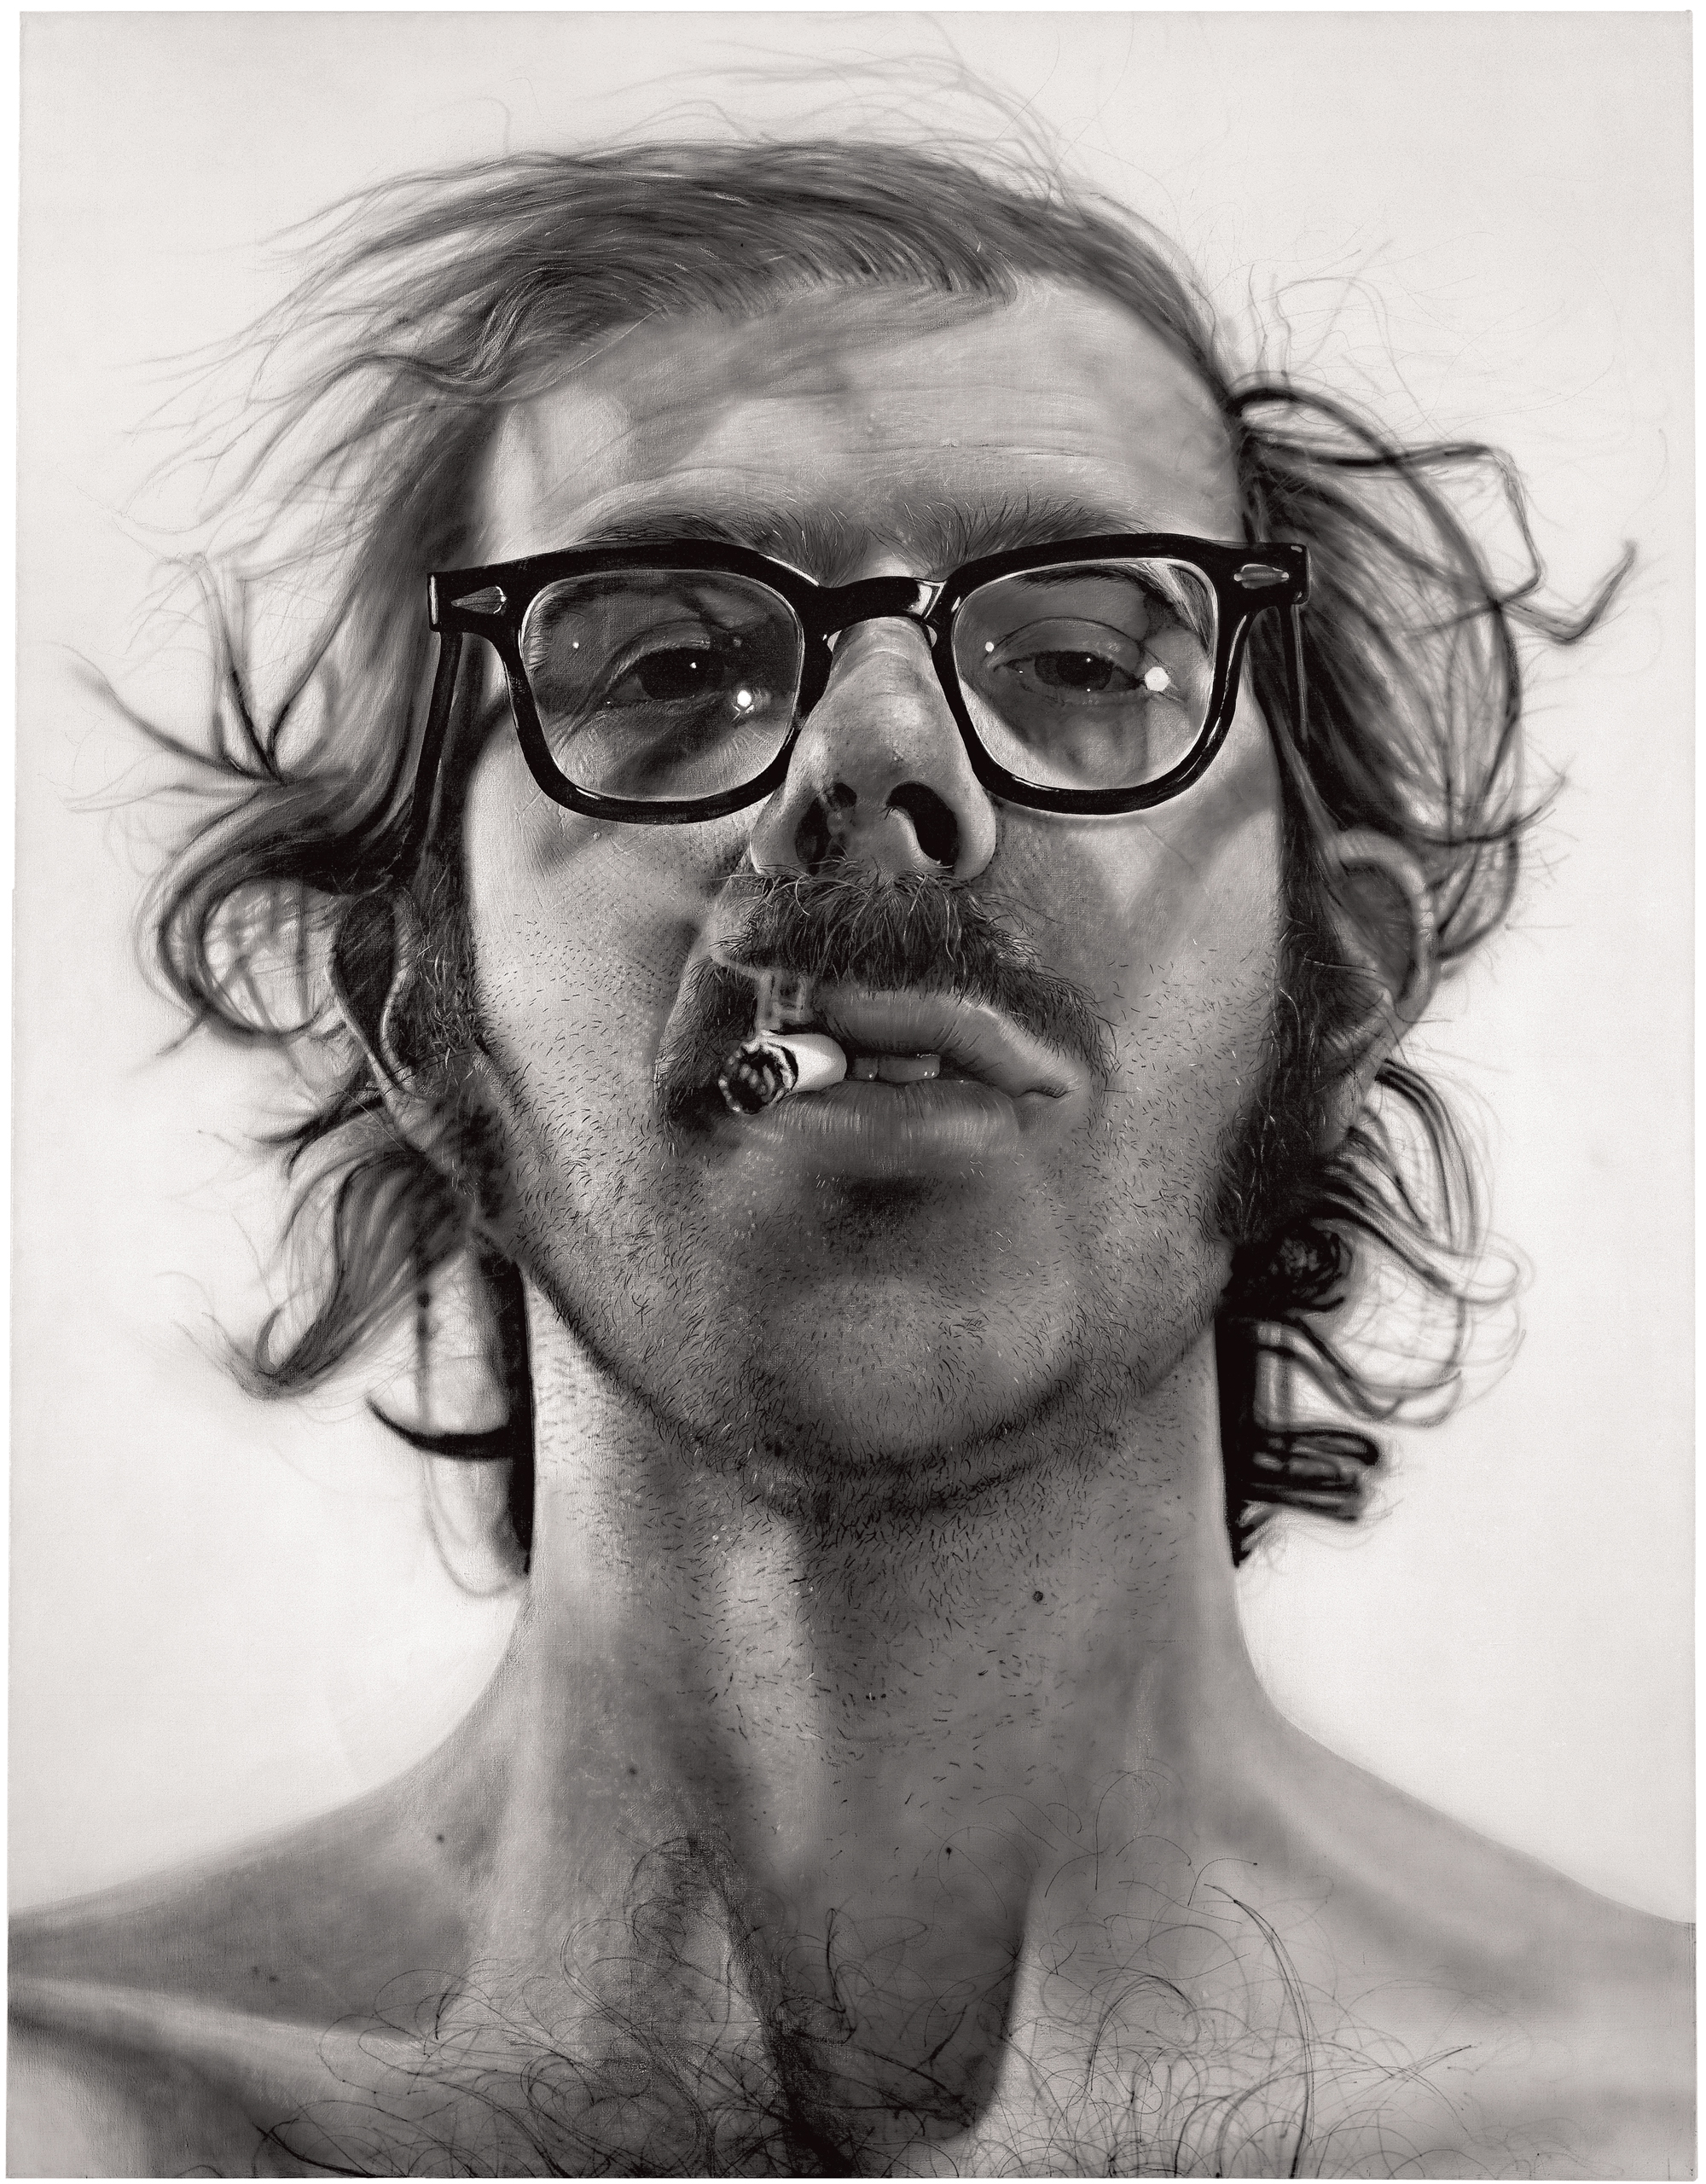 Chuck Close Big Self-Portrait 1967-1968 Acrylic on canvas 107 1⁄2 x 83 1⁄2 inches © Chuck Close, courtesy Pace Gallery